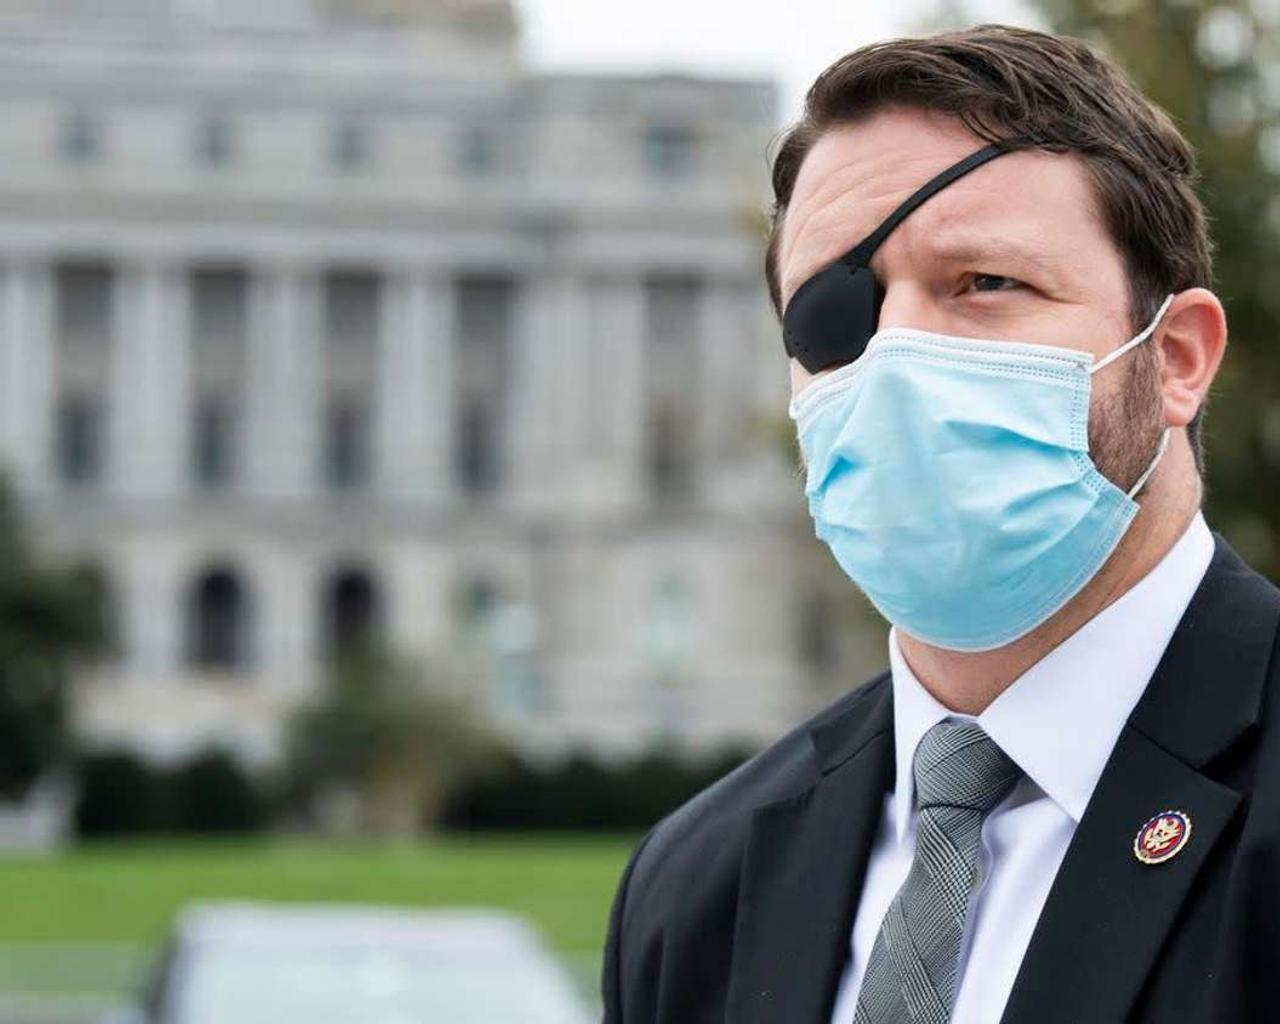 Attorney Dan Crenshaw says he will be 'blind' for a month after undergoing emergency eye surgery